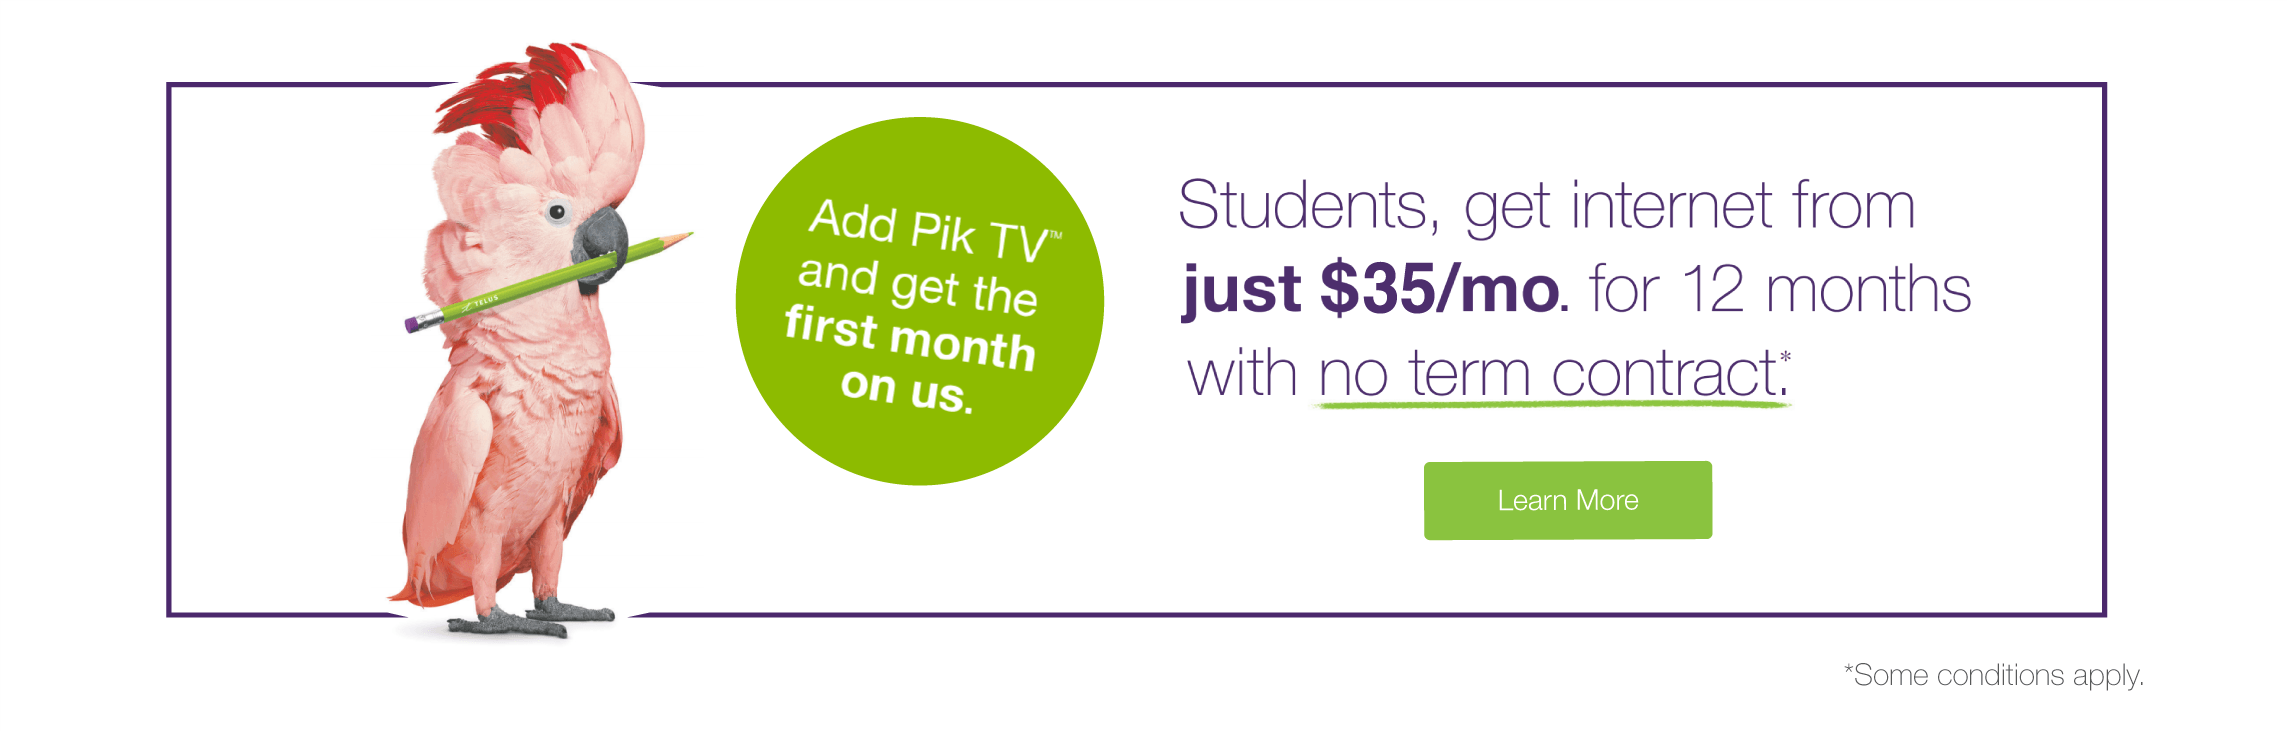 Students save on Internet for the first 8 months!